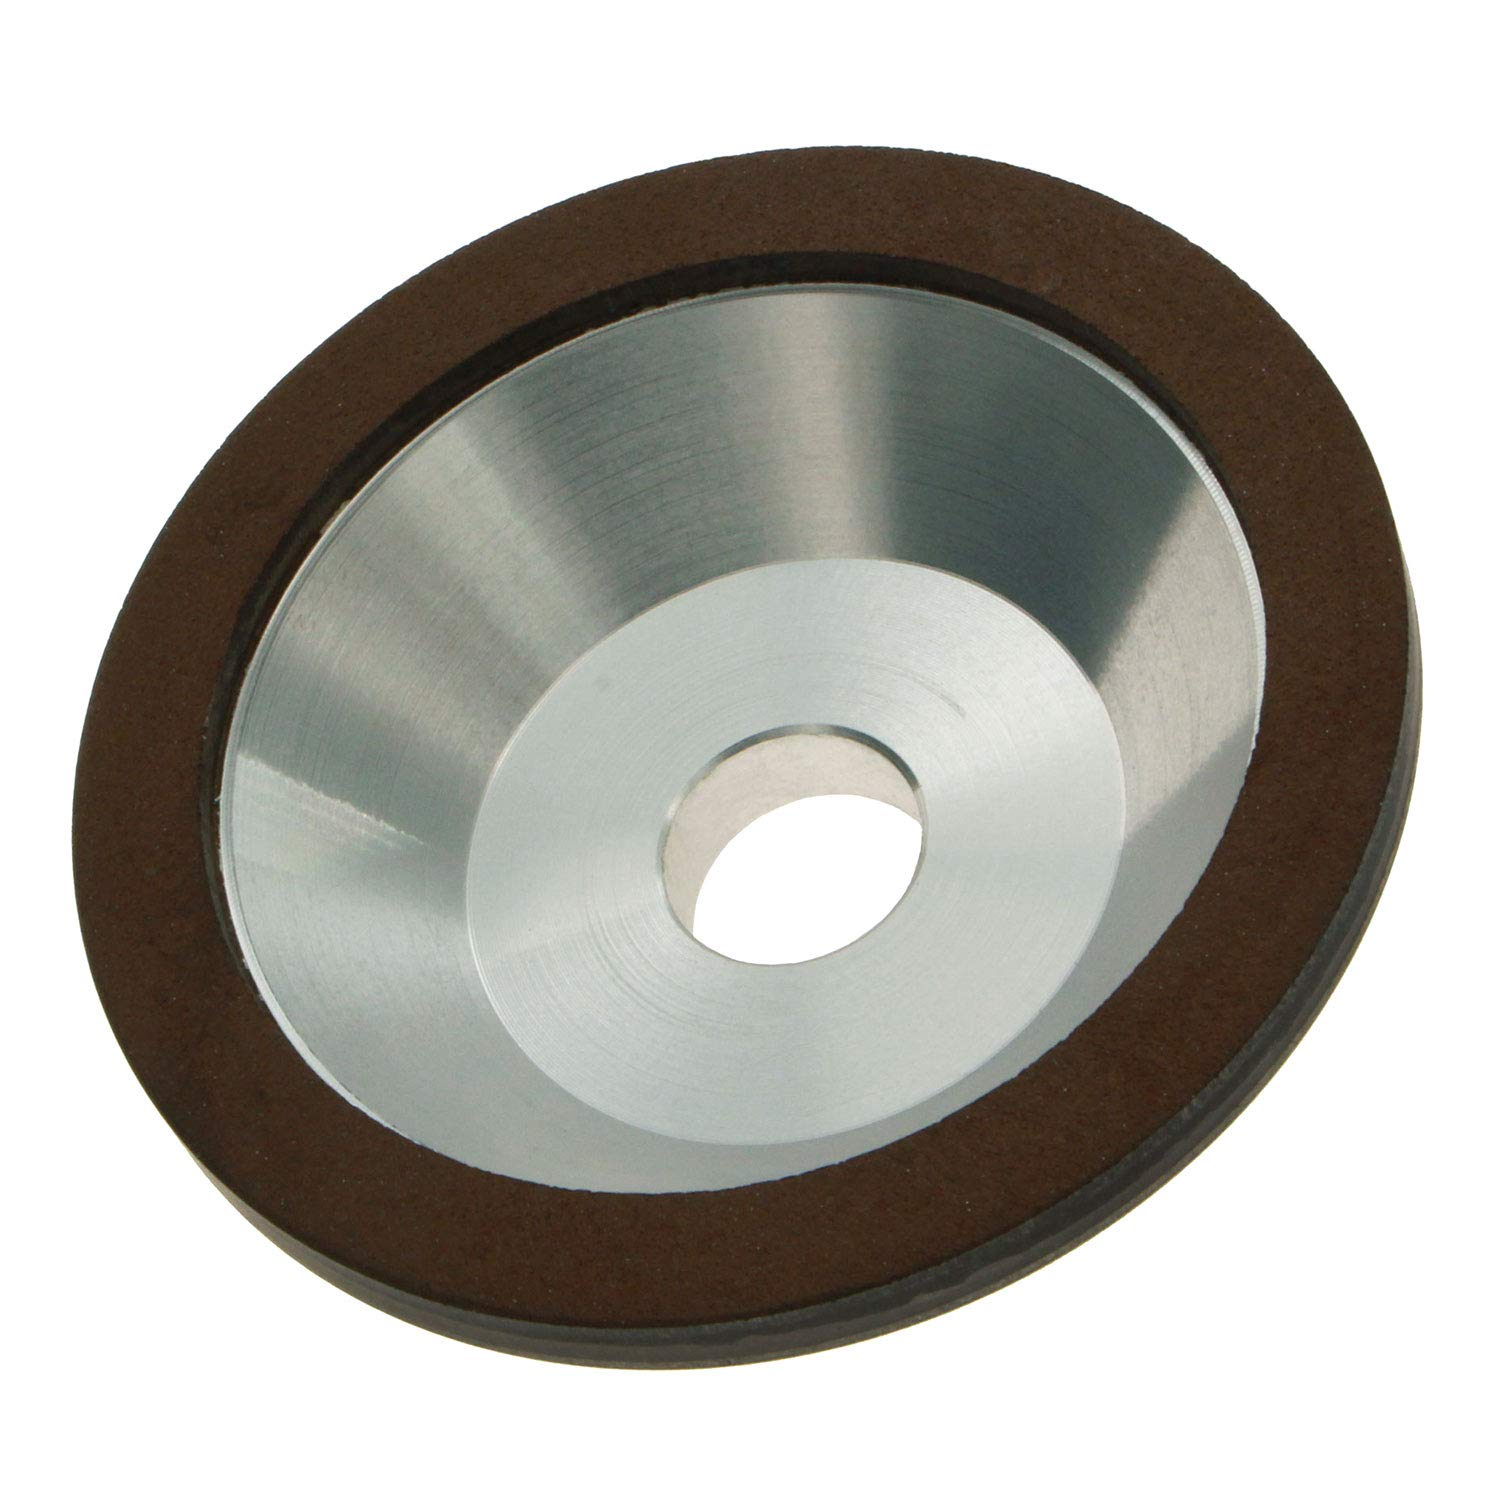 GZTool 4'' Resin Bonded Diamond Cup Grinding Wheel Grit 80 for Carbide Metal Steel Mold Pottery 100mm 20mm